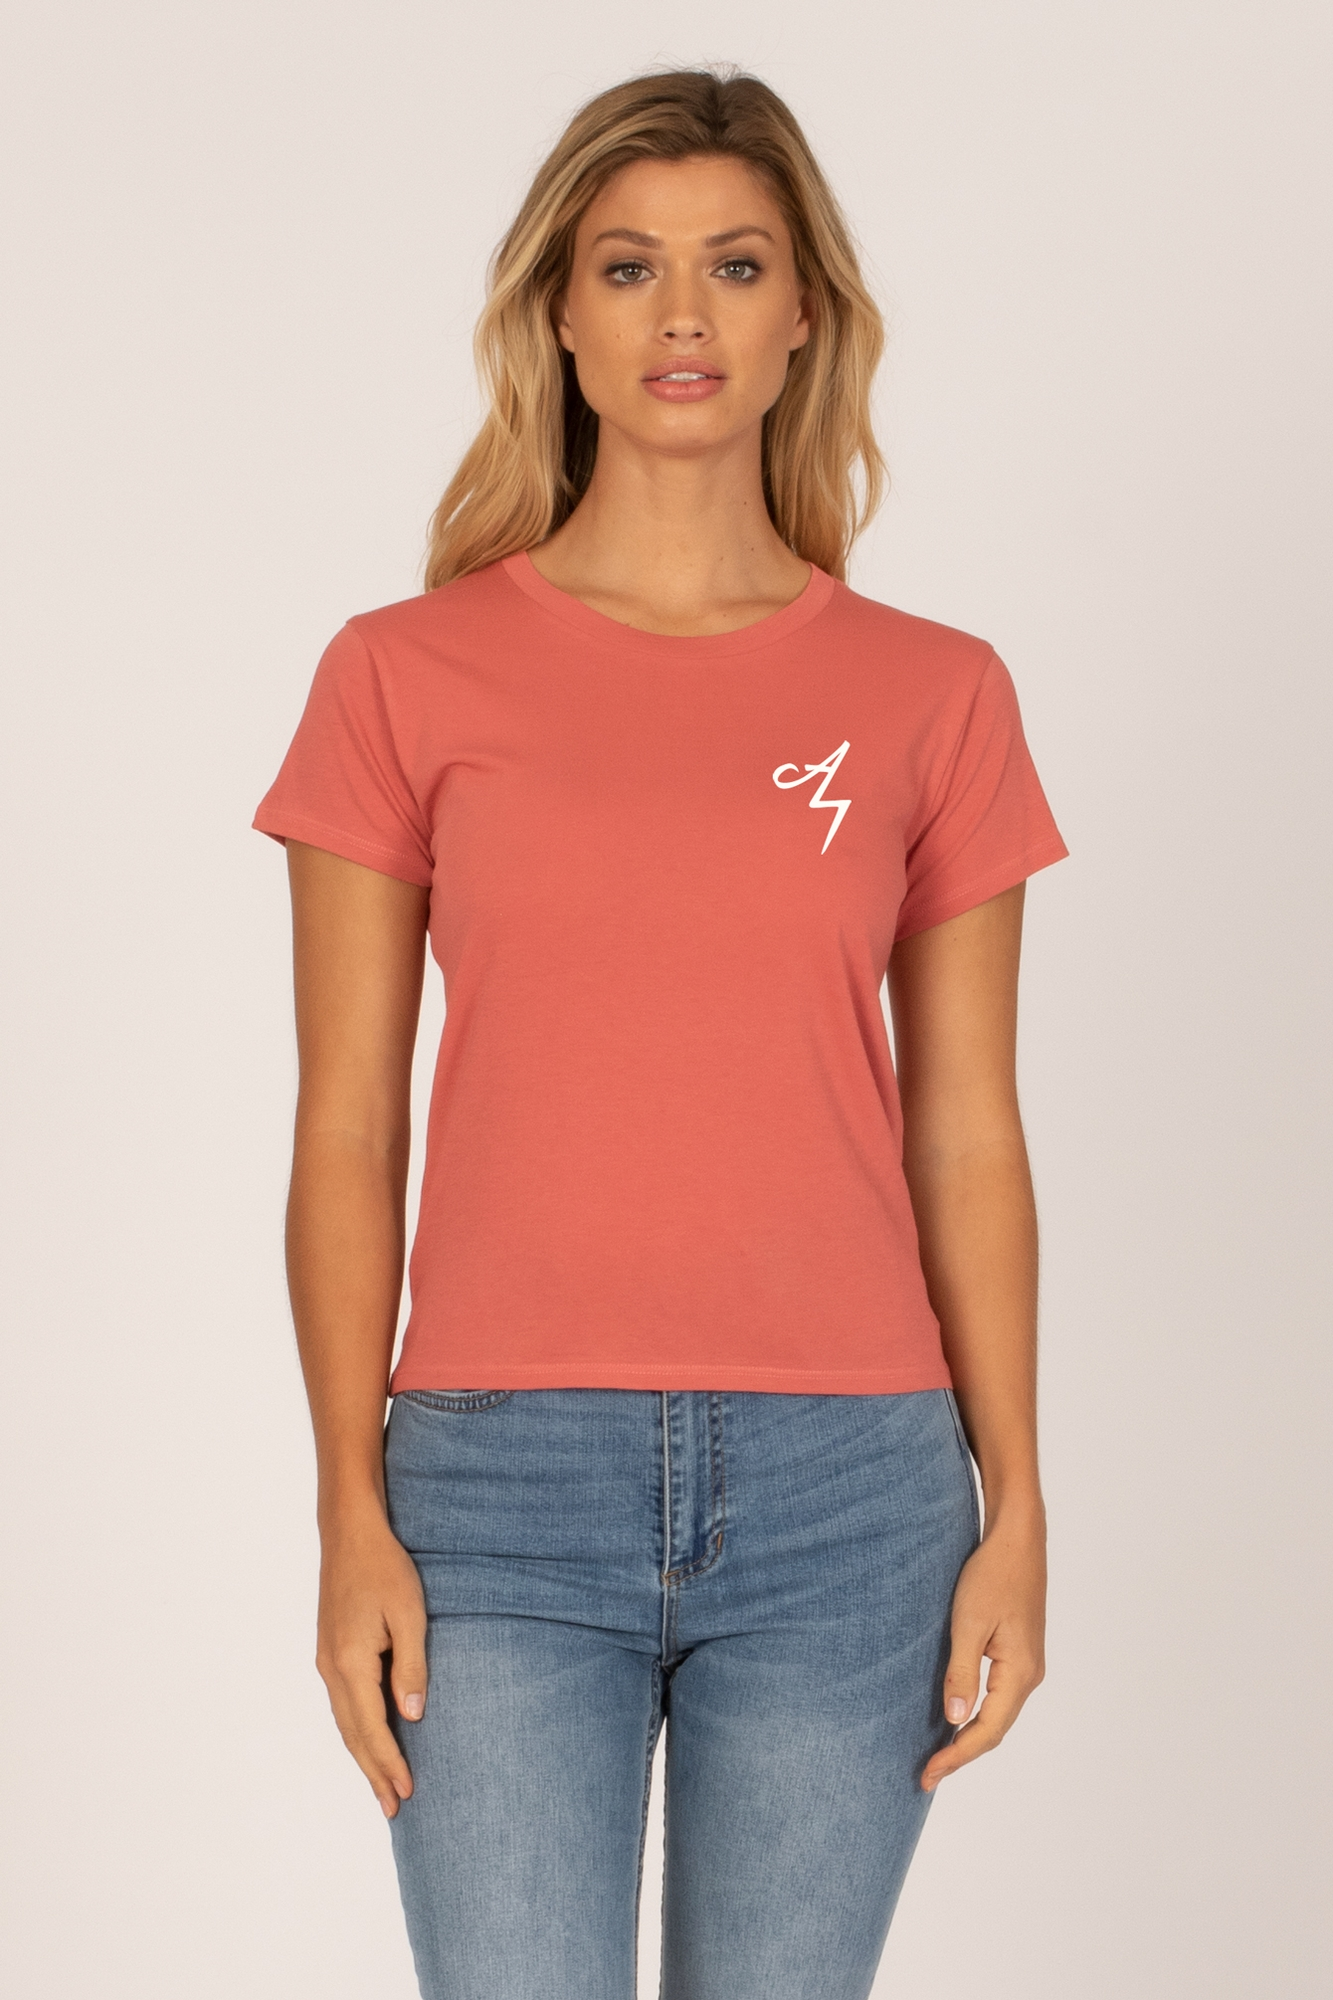 Electric Muse Tee